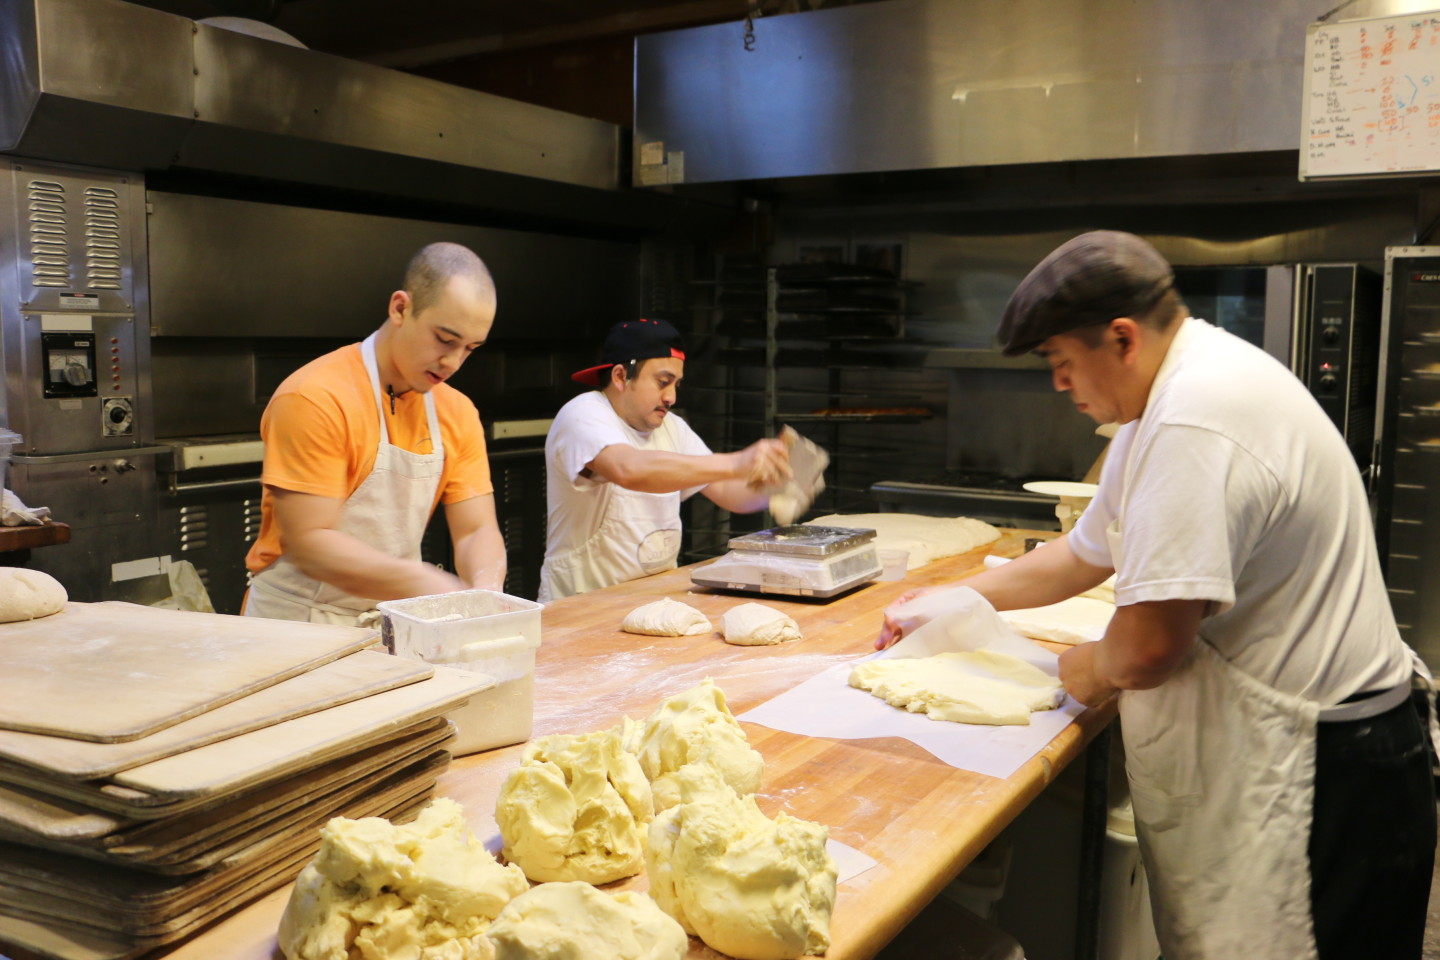 Maldonado brings in additional revenue by renting kitchen space to other bakers, (Joanne Elgart Jennings/KQED)